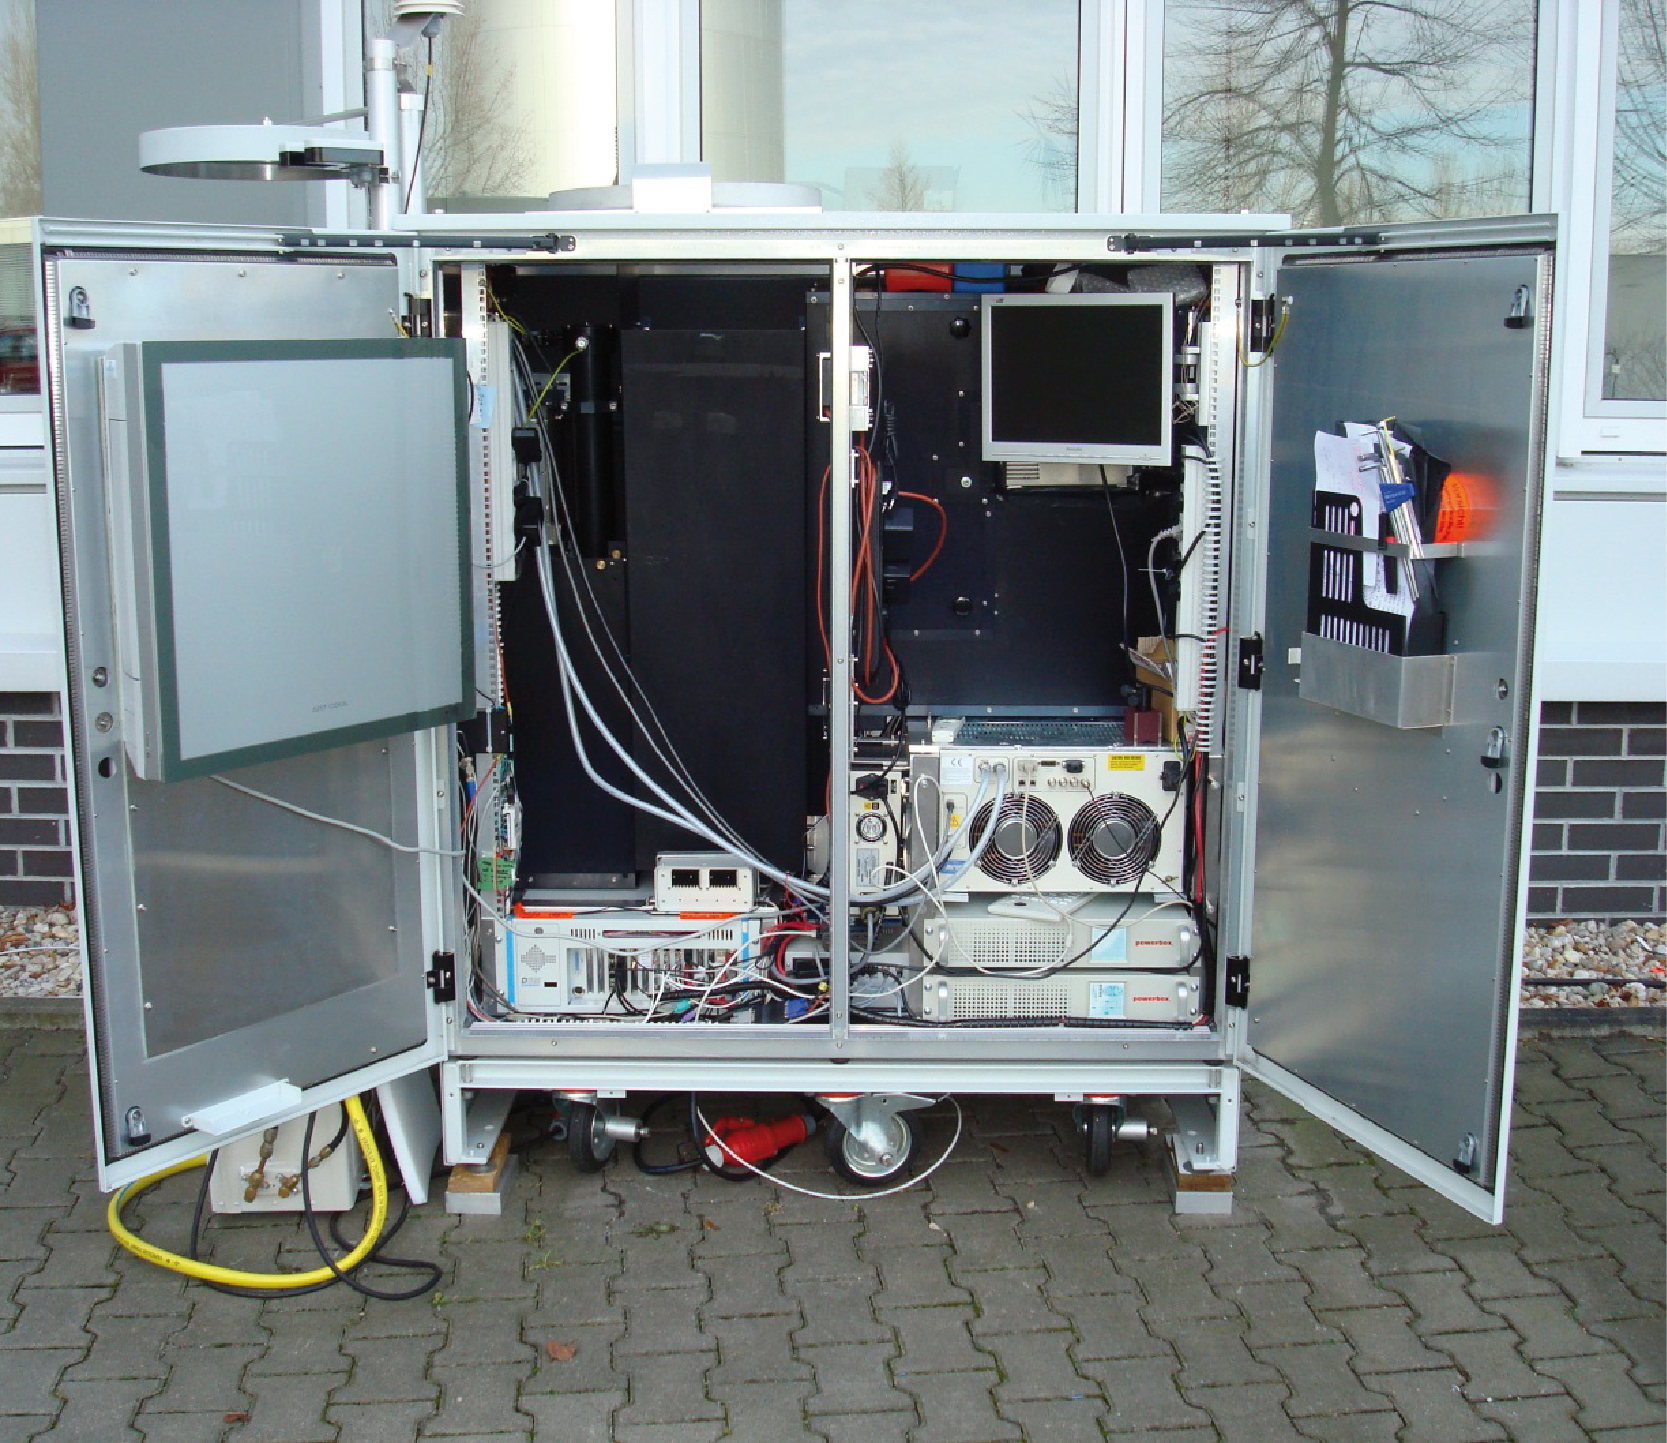 Polly-XT is a multi-wavelength depolarization Raman lidar, developed at TROPOS. It allows ground based measurements of the concentration and composition of atmospheric dust on different heights. 